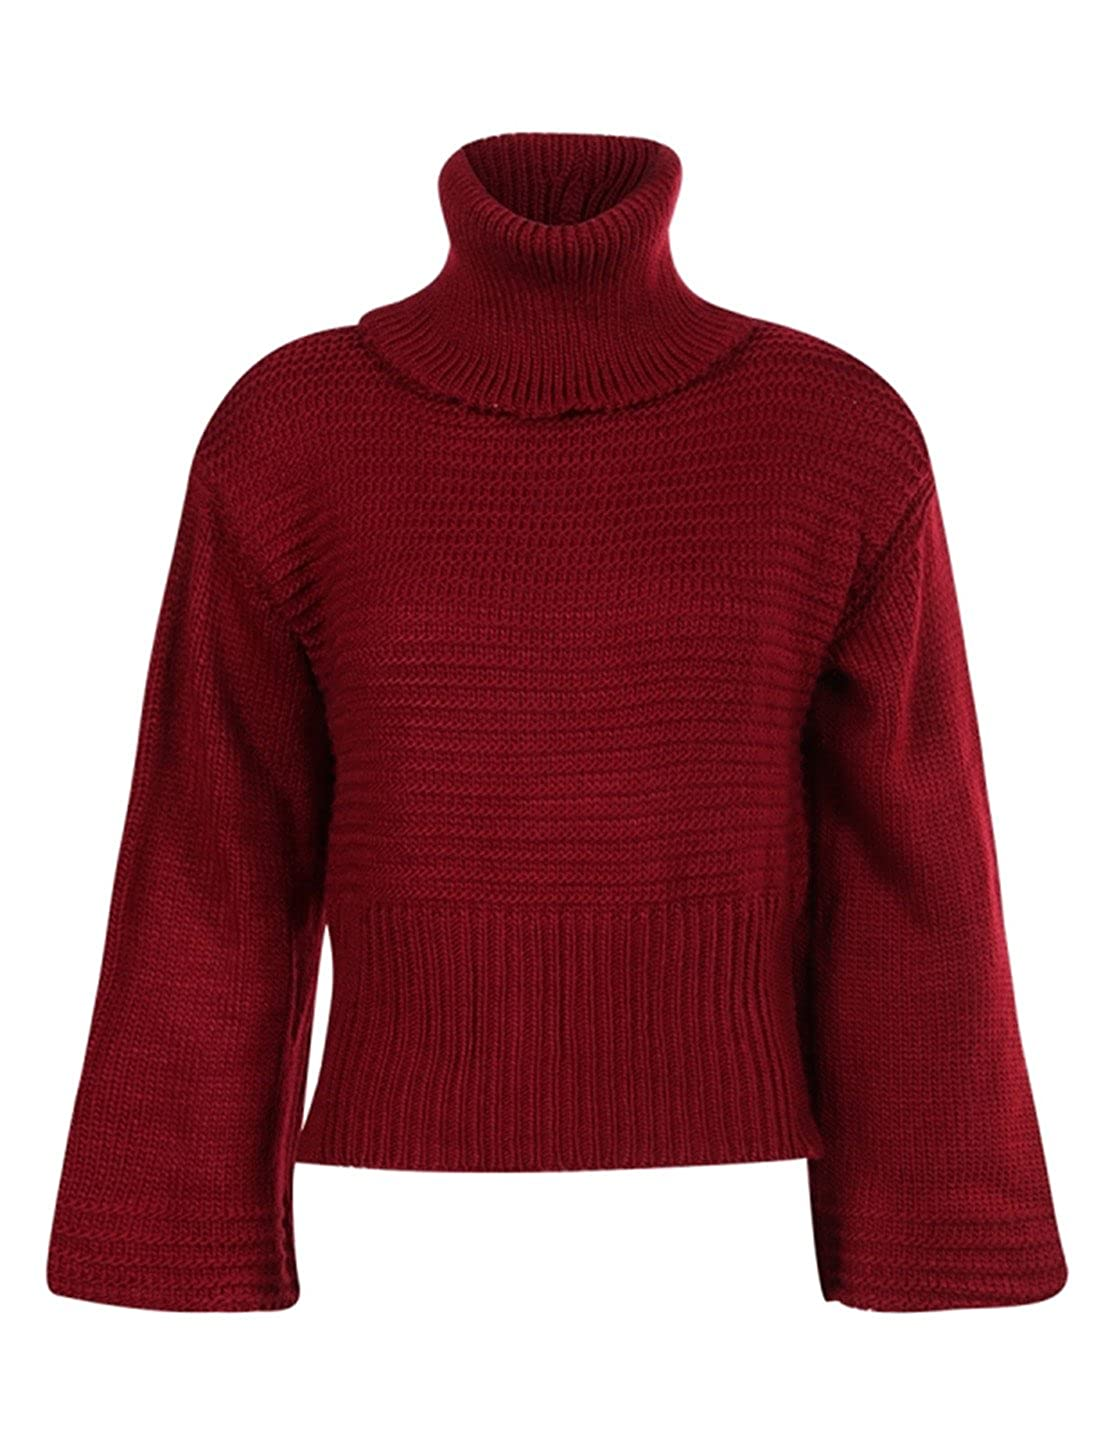 hodoyi Womens Turtleneck Long Sleeve Cable Knit Pullover Sweater at Amazon  Women s Clothing store  489bff933